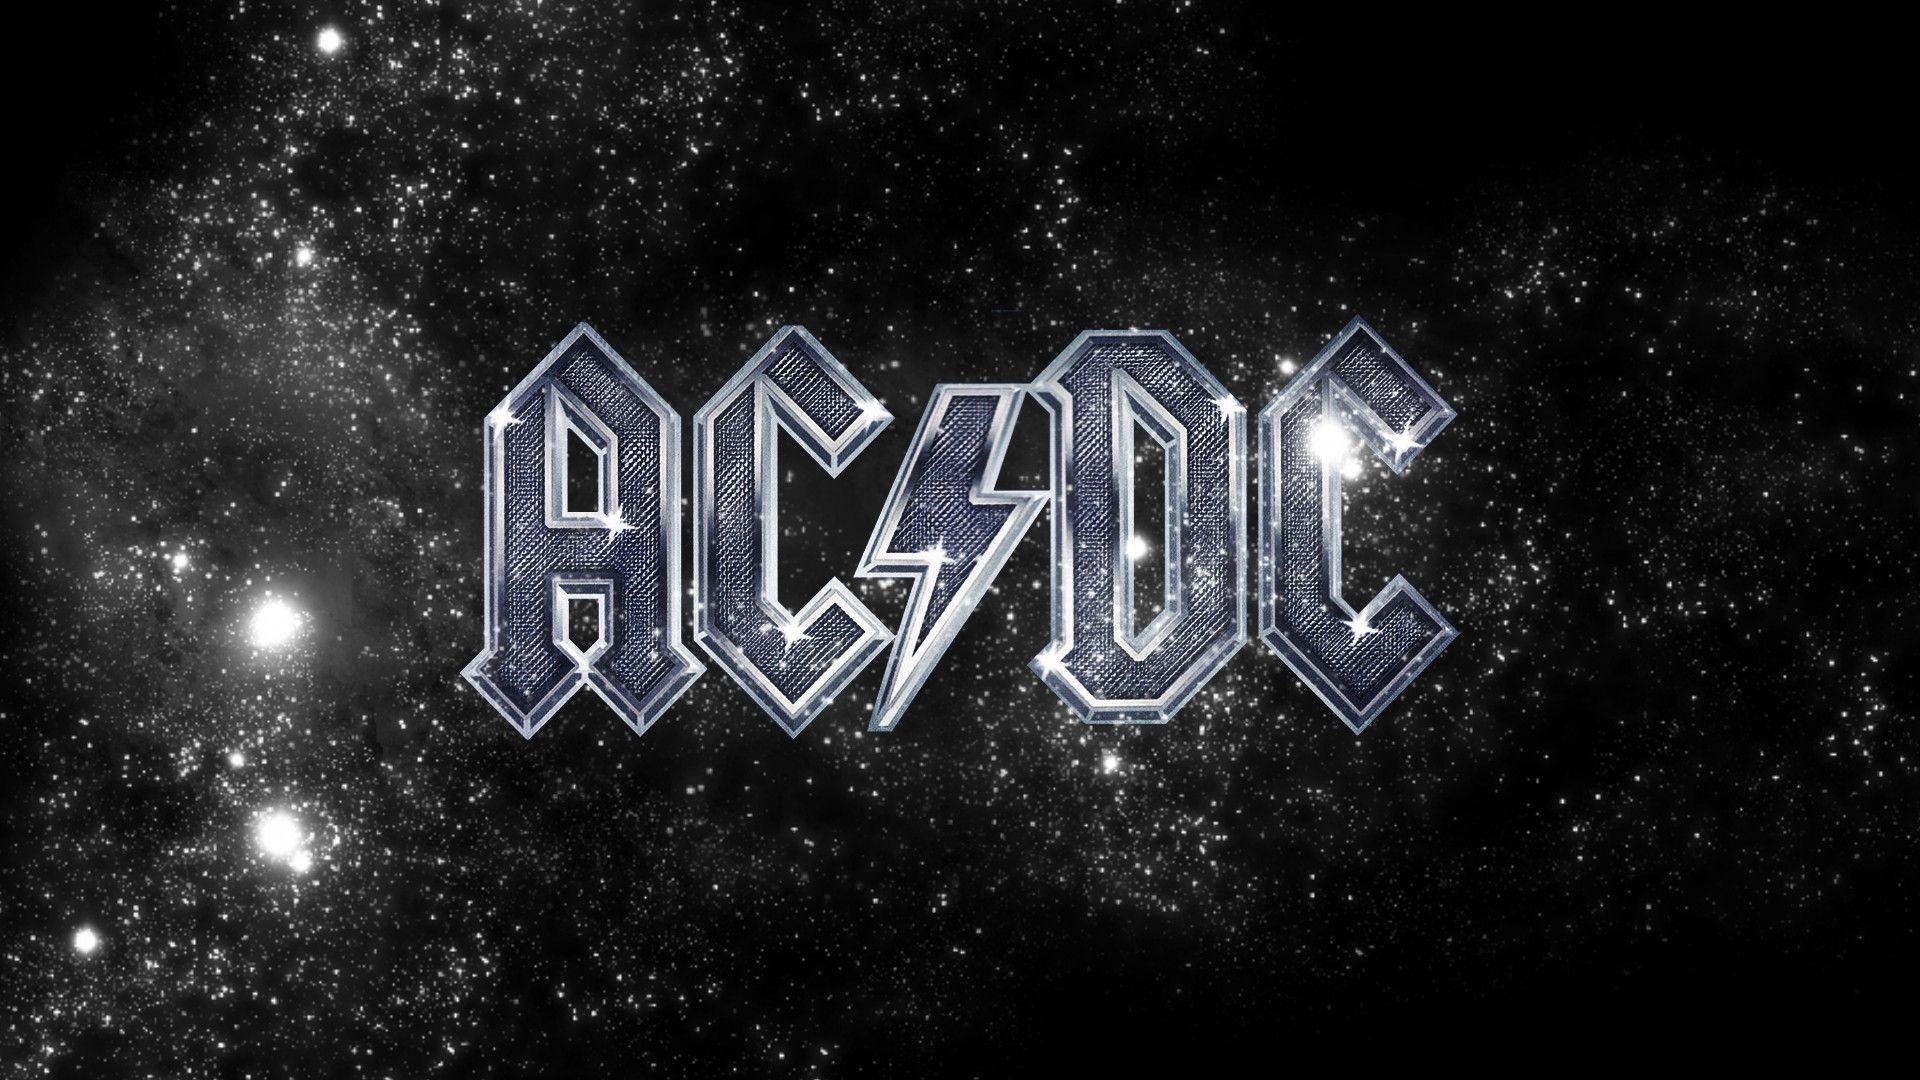 Res: 1920x1080, HDQ Cover Wallpapers: AC DC Wallpapers Free, AC DC Photos For